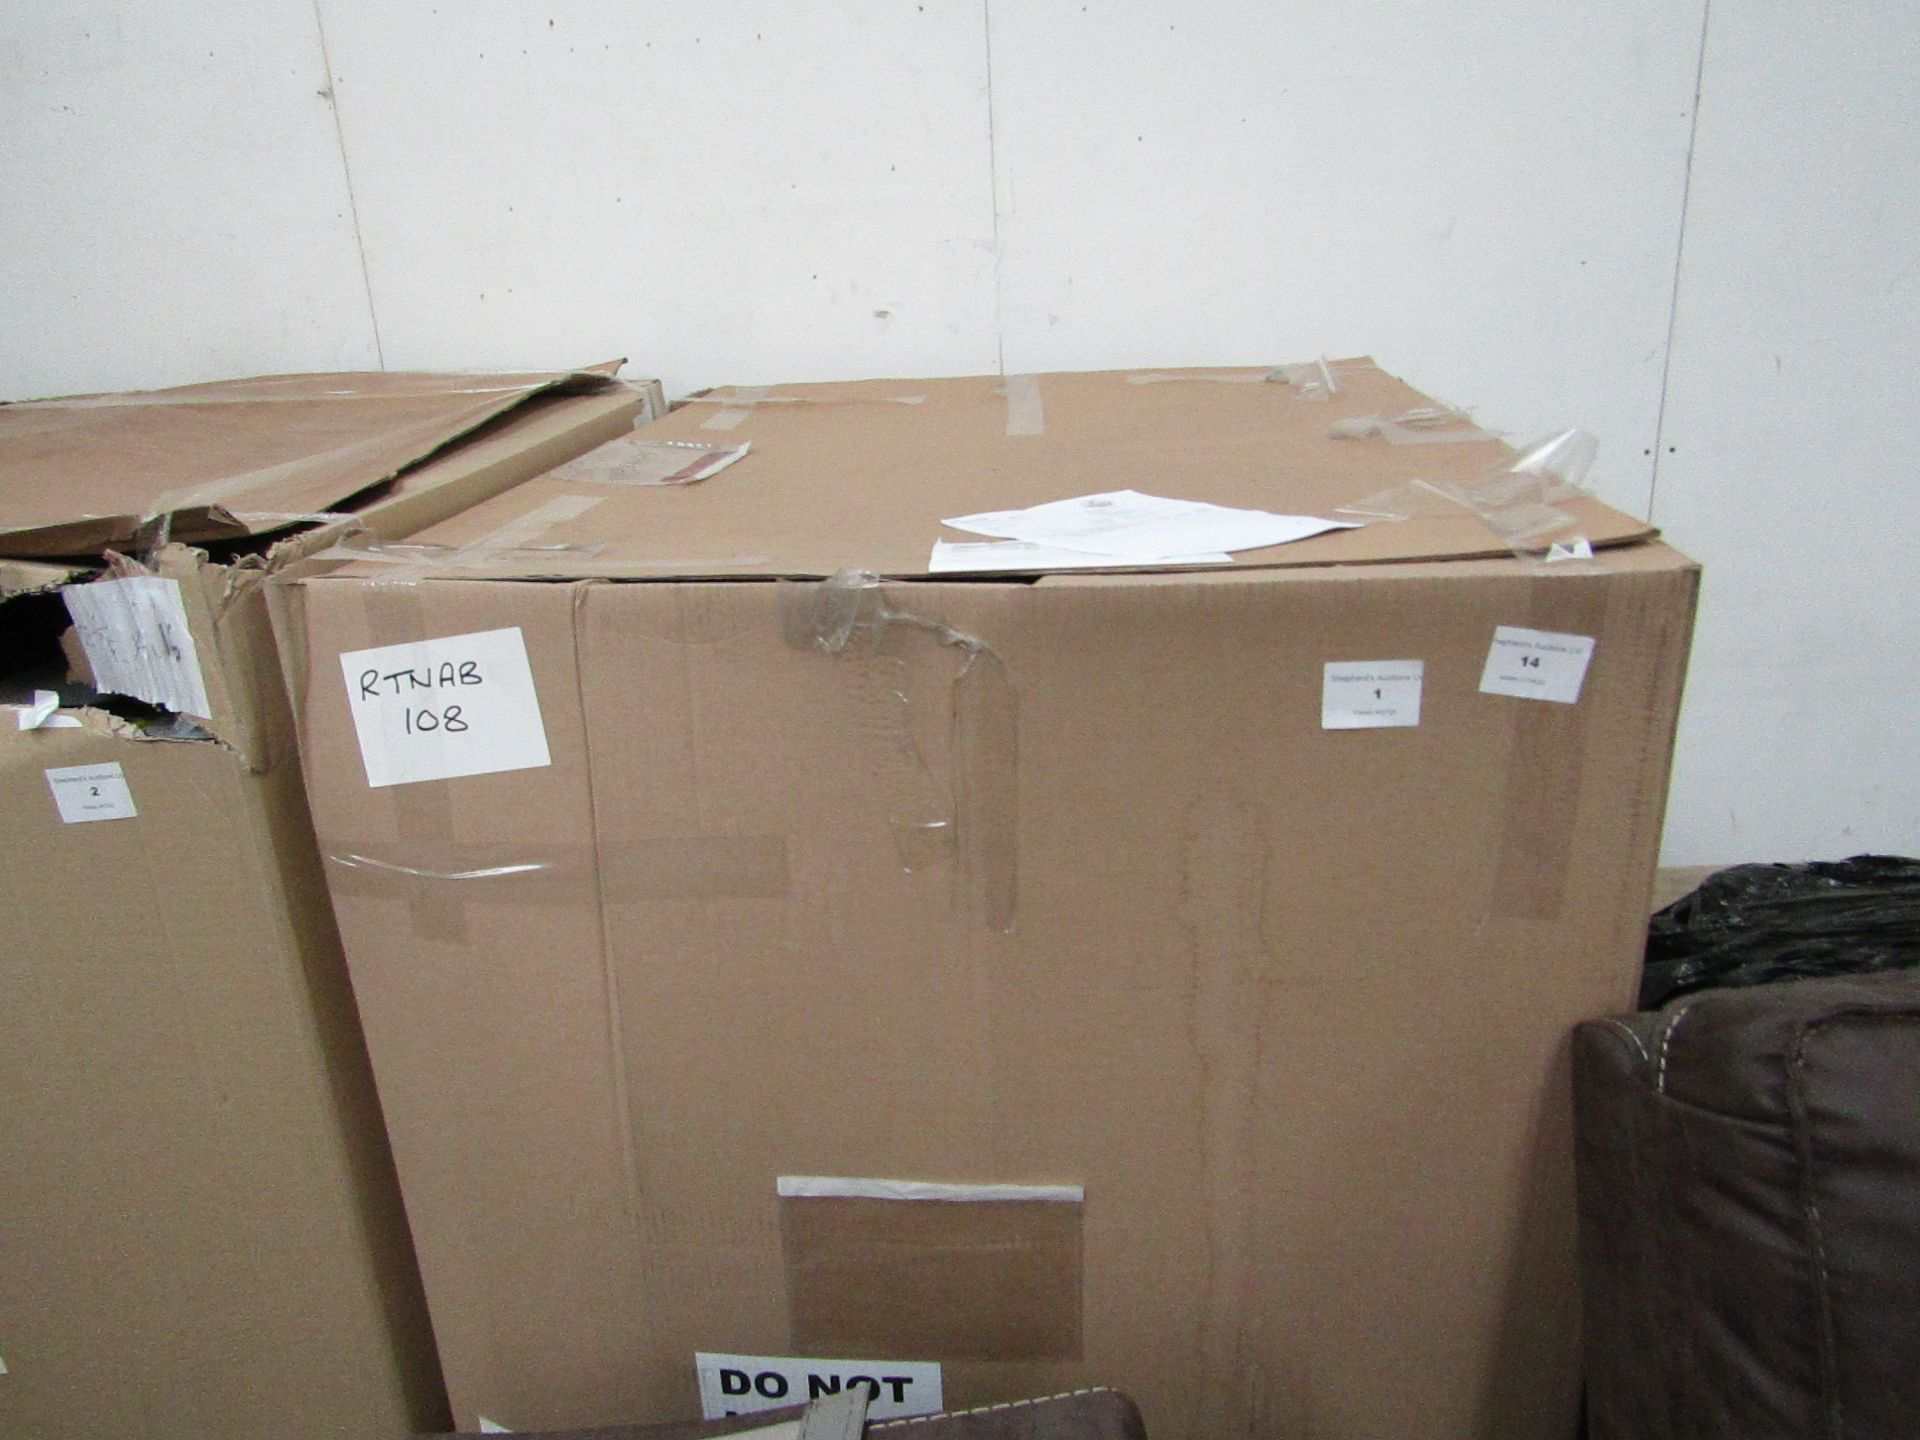 | 1x | PALLET OF APPROX 35 AIRBEDS | UNCHECKED CUSTOMER RETURNS | REF RTNAB108 |please note that all